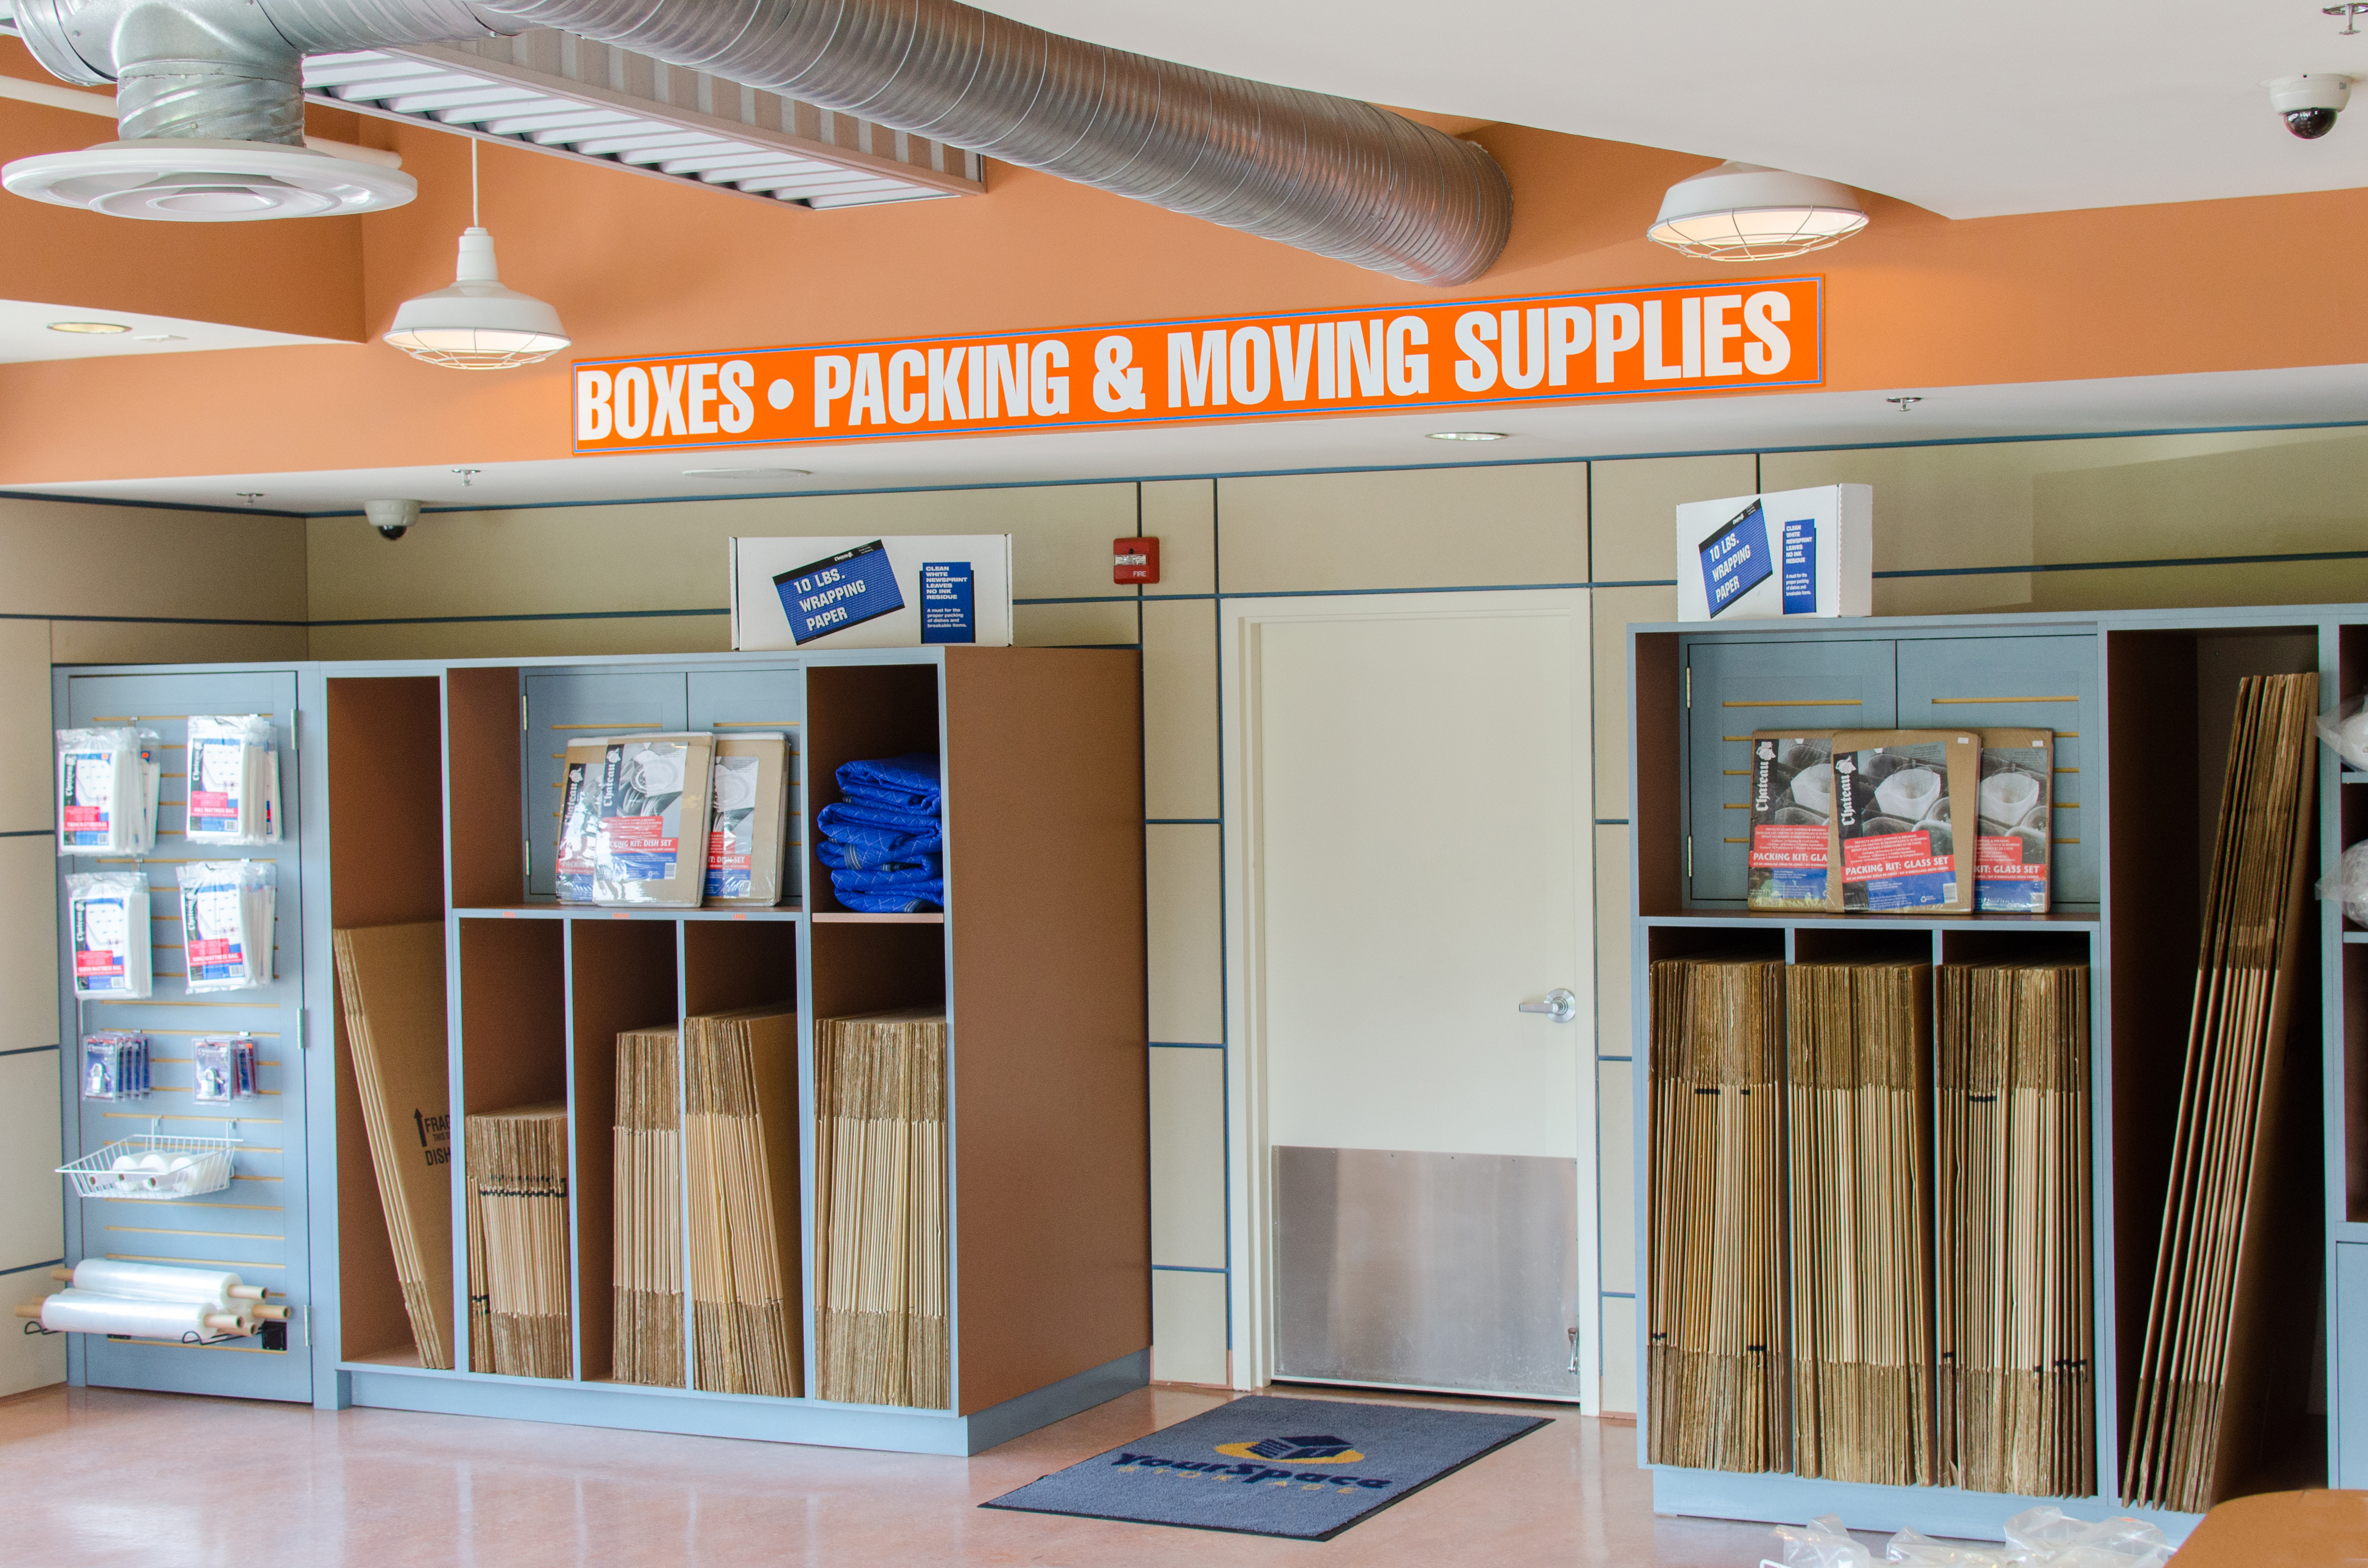 YourSpace Storage at Joppatowne - Moving Boxes & Packing Supplies